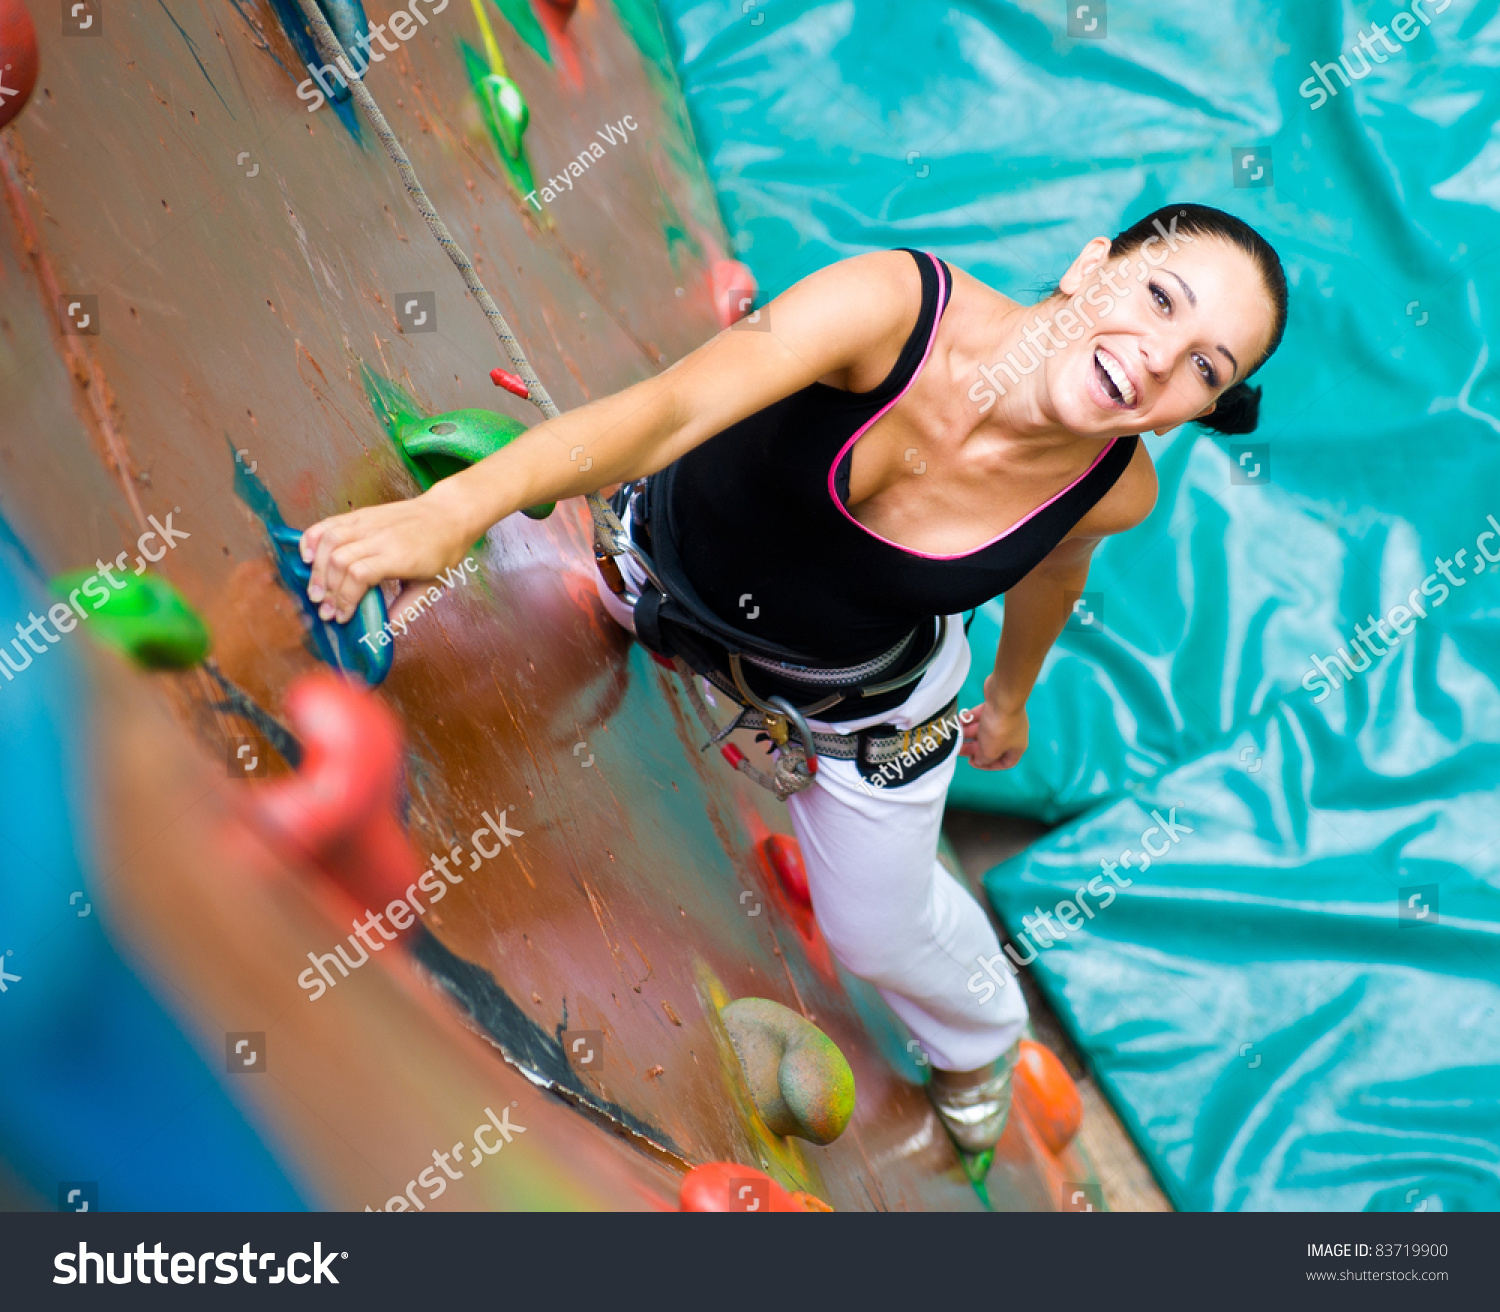 Women outdoor rock climbing